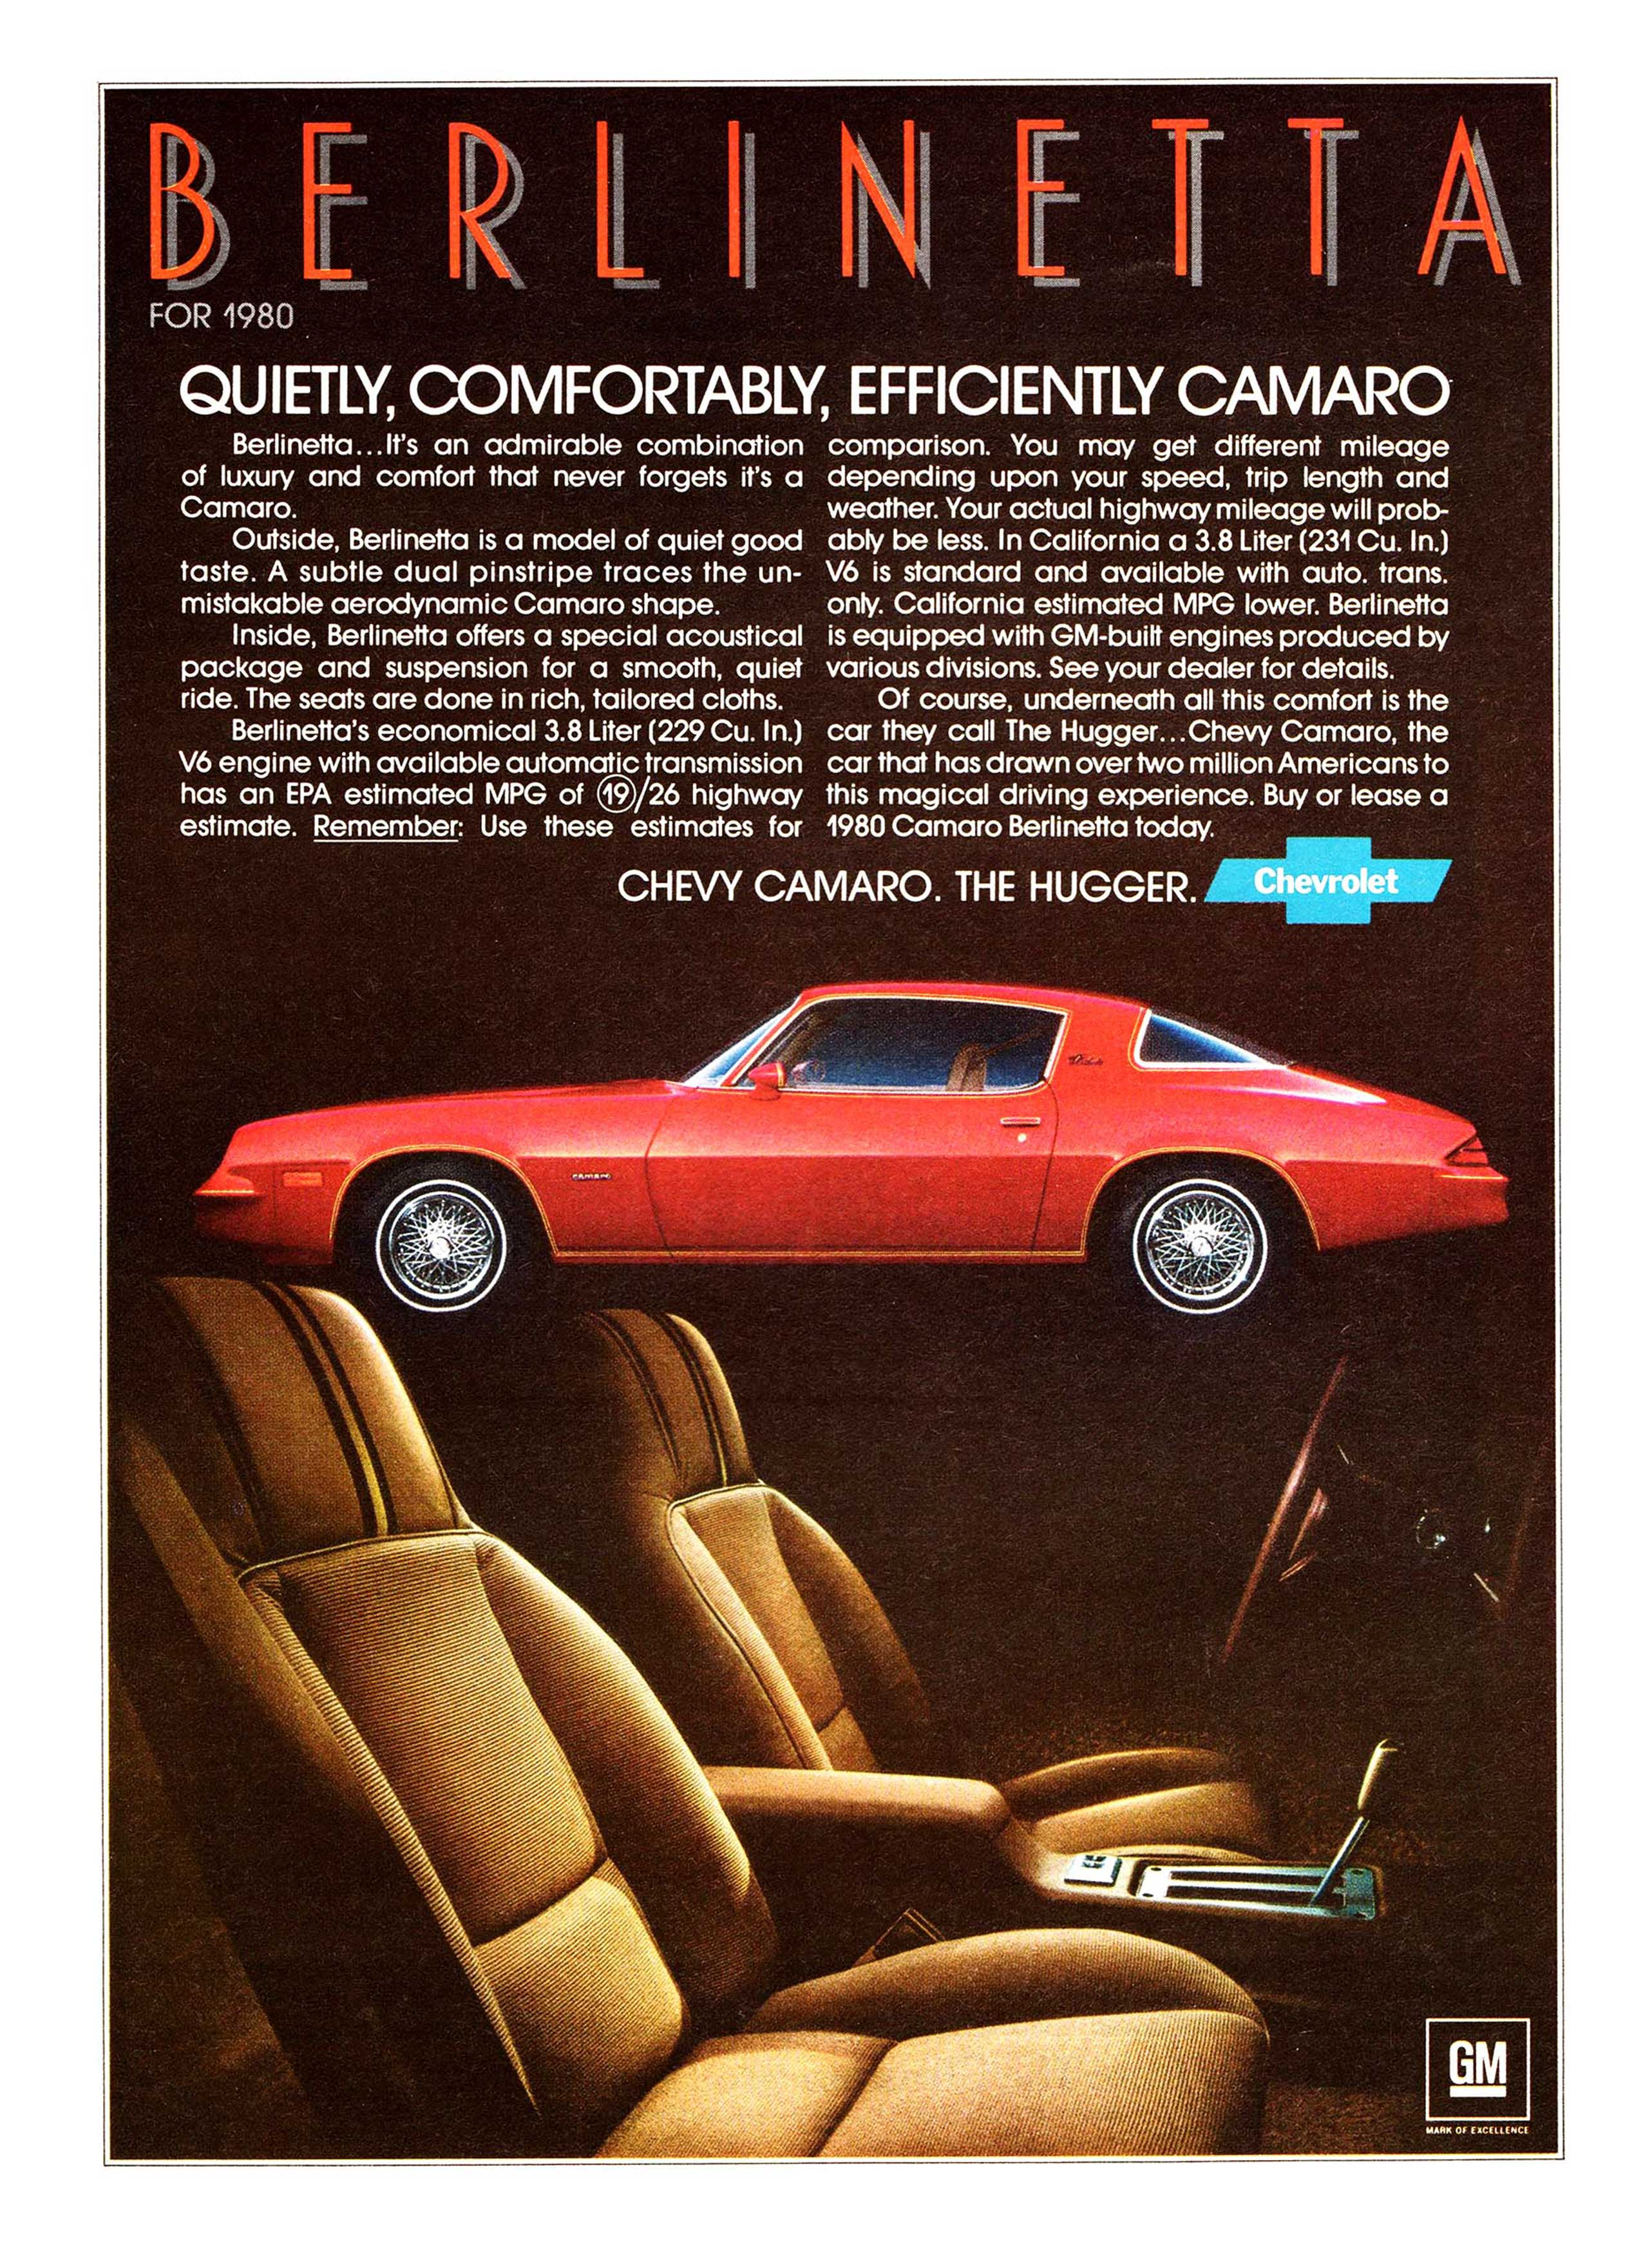 Car And Driver 10 Best >> Coolest Chevrolet Camaro Ads of the 1970s! | Chevys Only